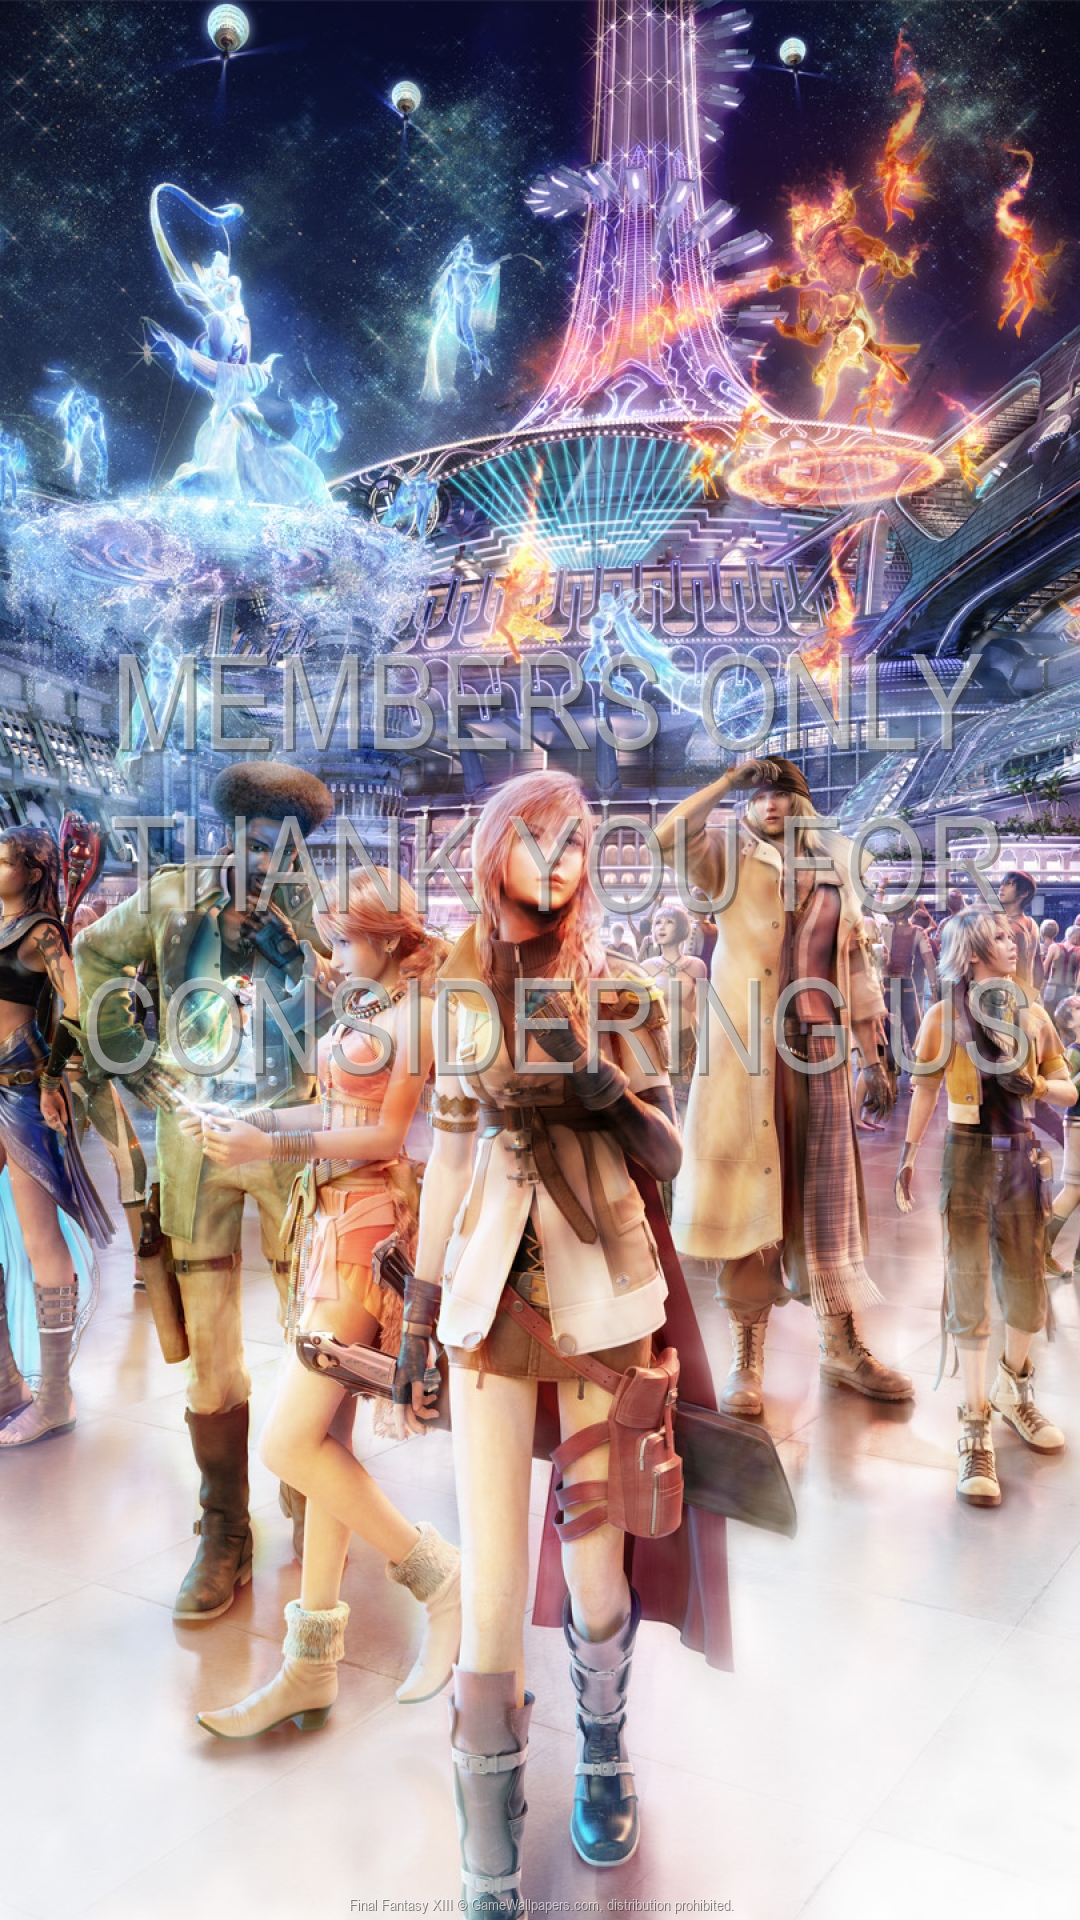 Final Fantasy XIII 1920x1080 Mobile wallpaper or background 11